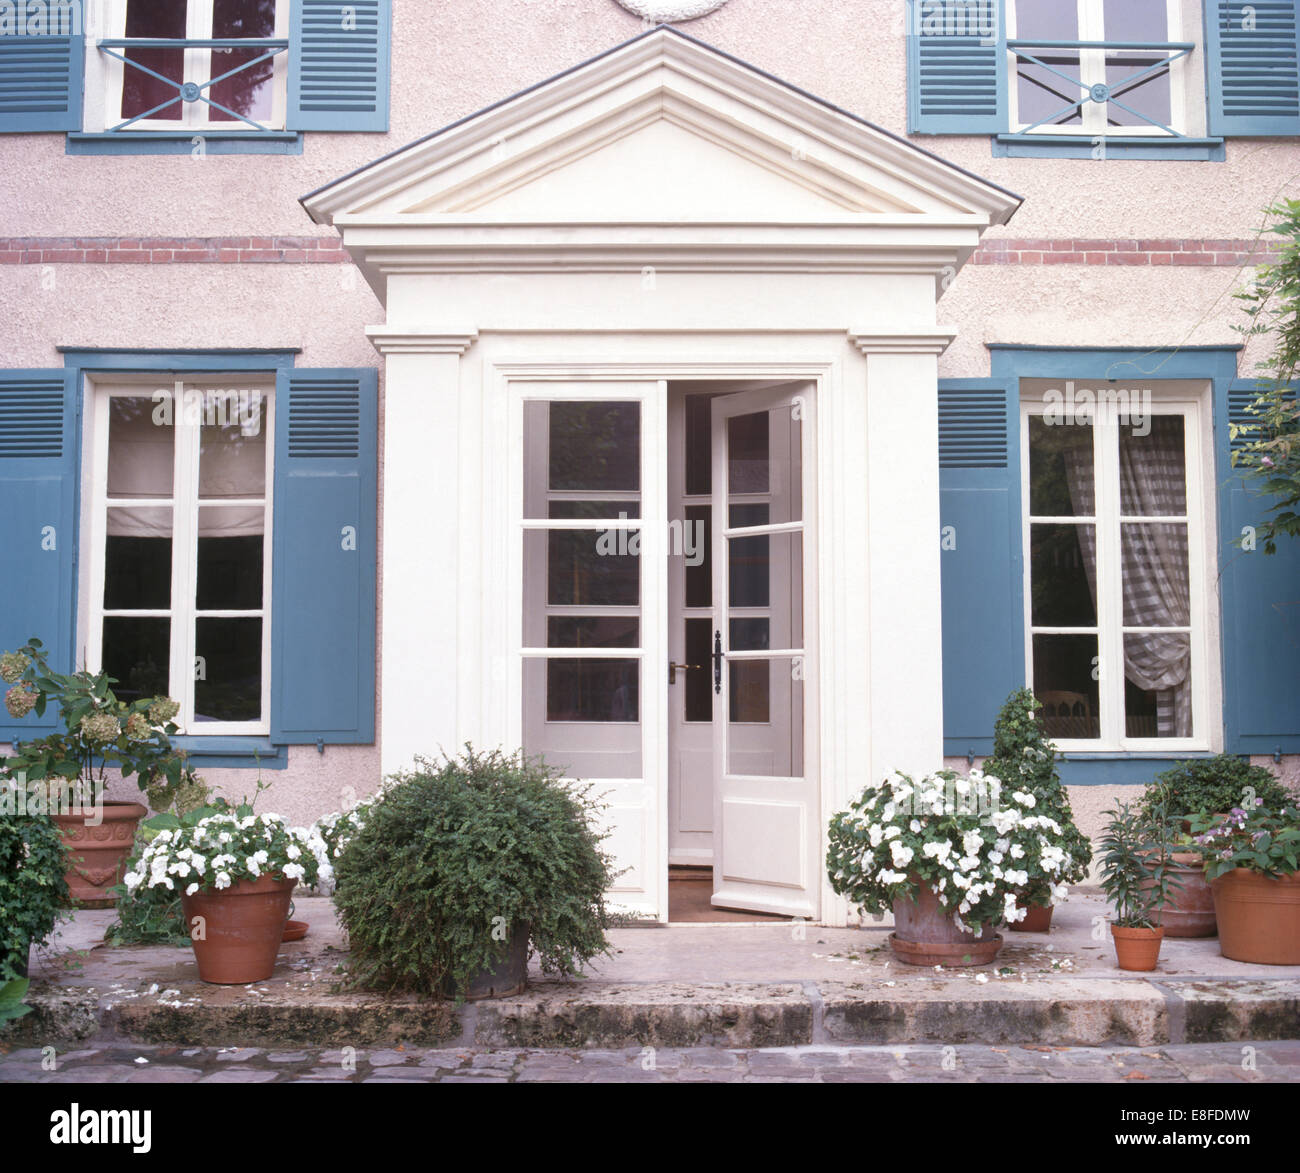 White impatiens in pots on either side of half glazed for French doors with windows either side